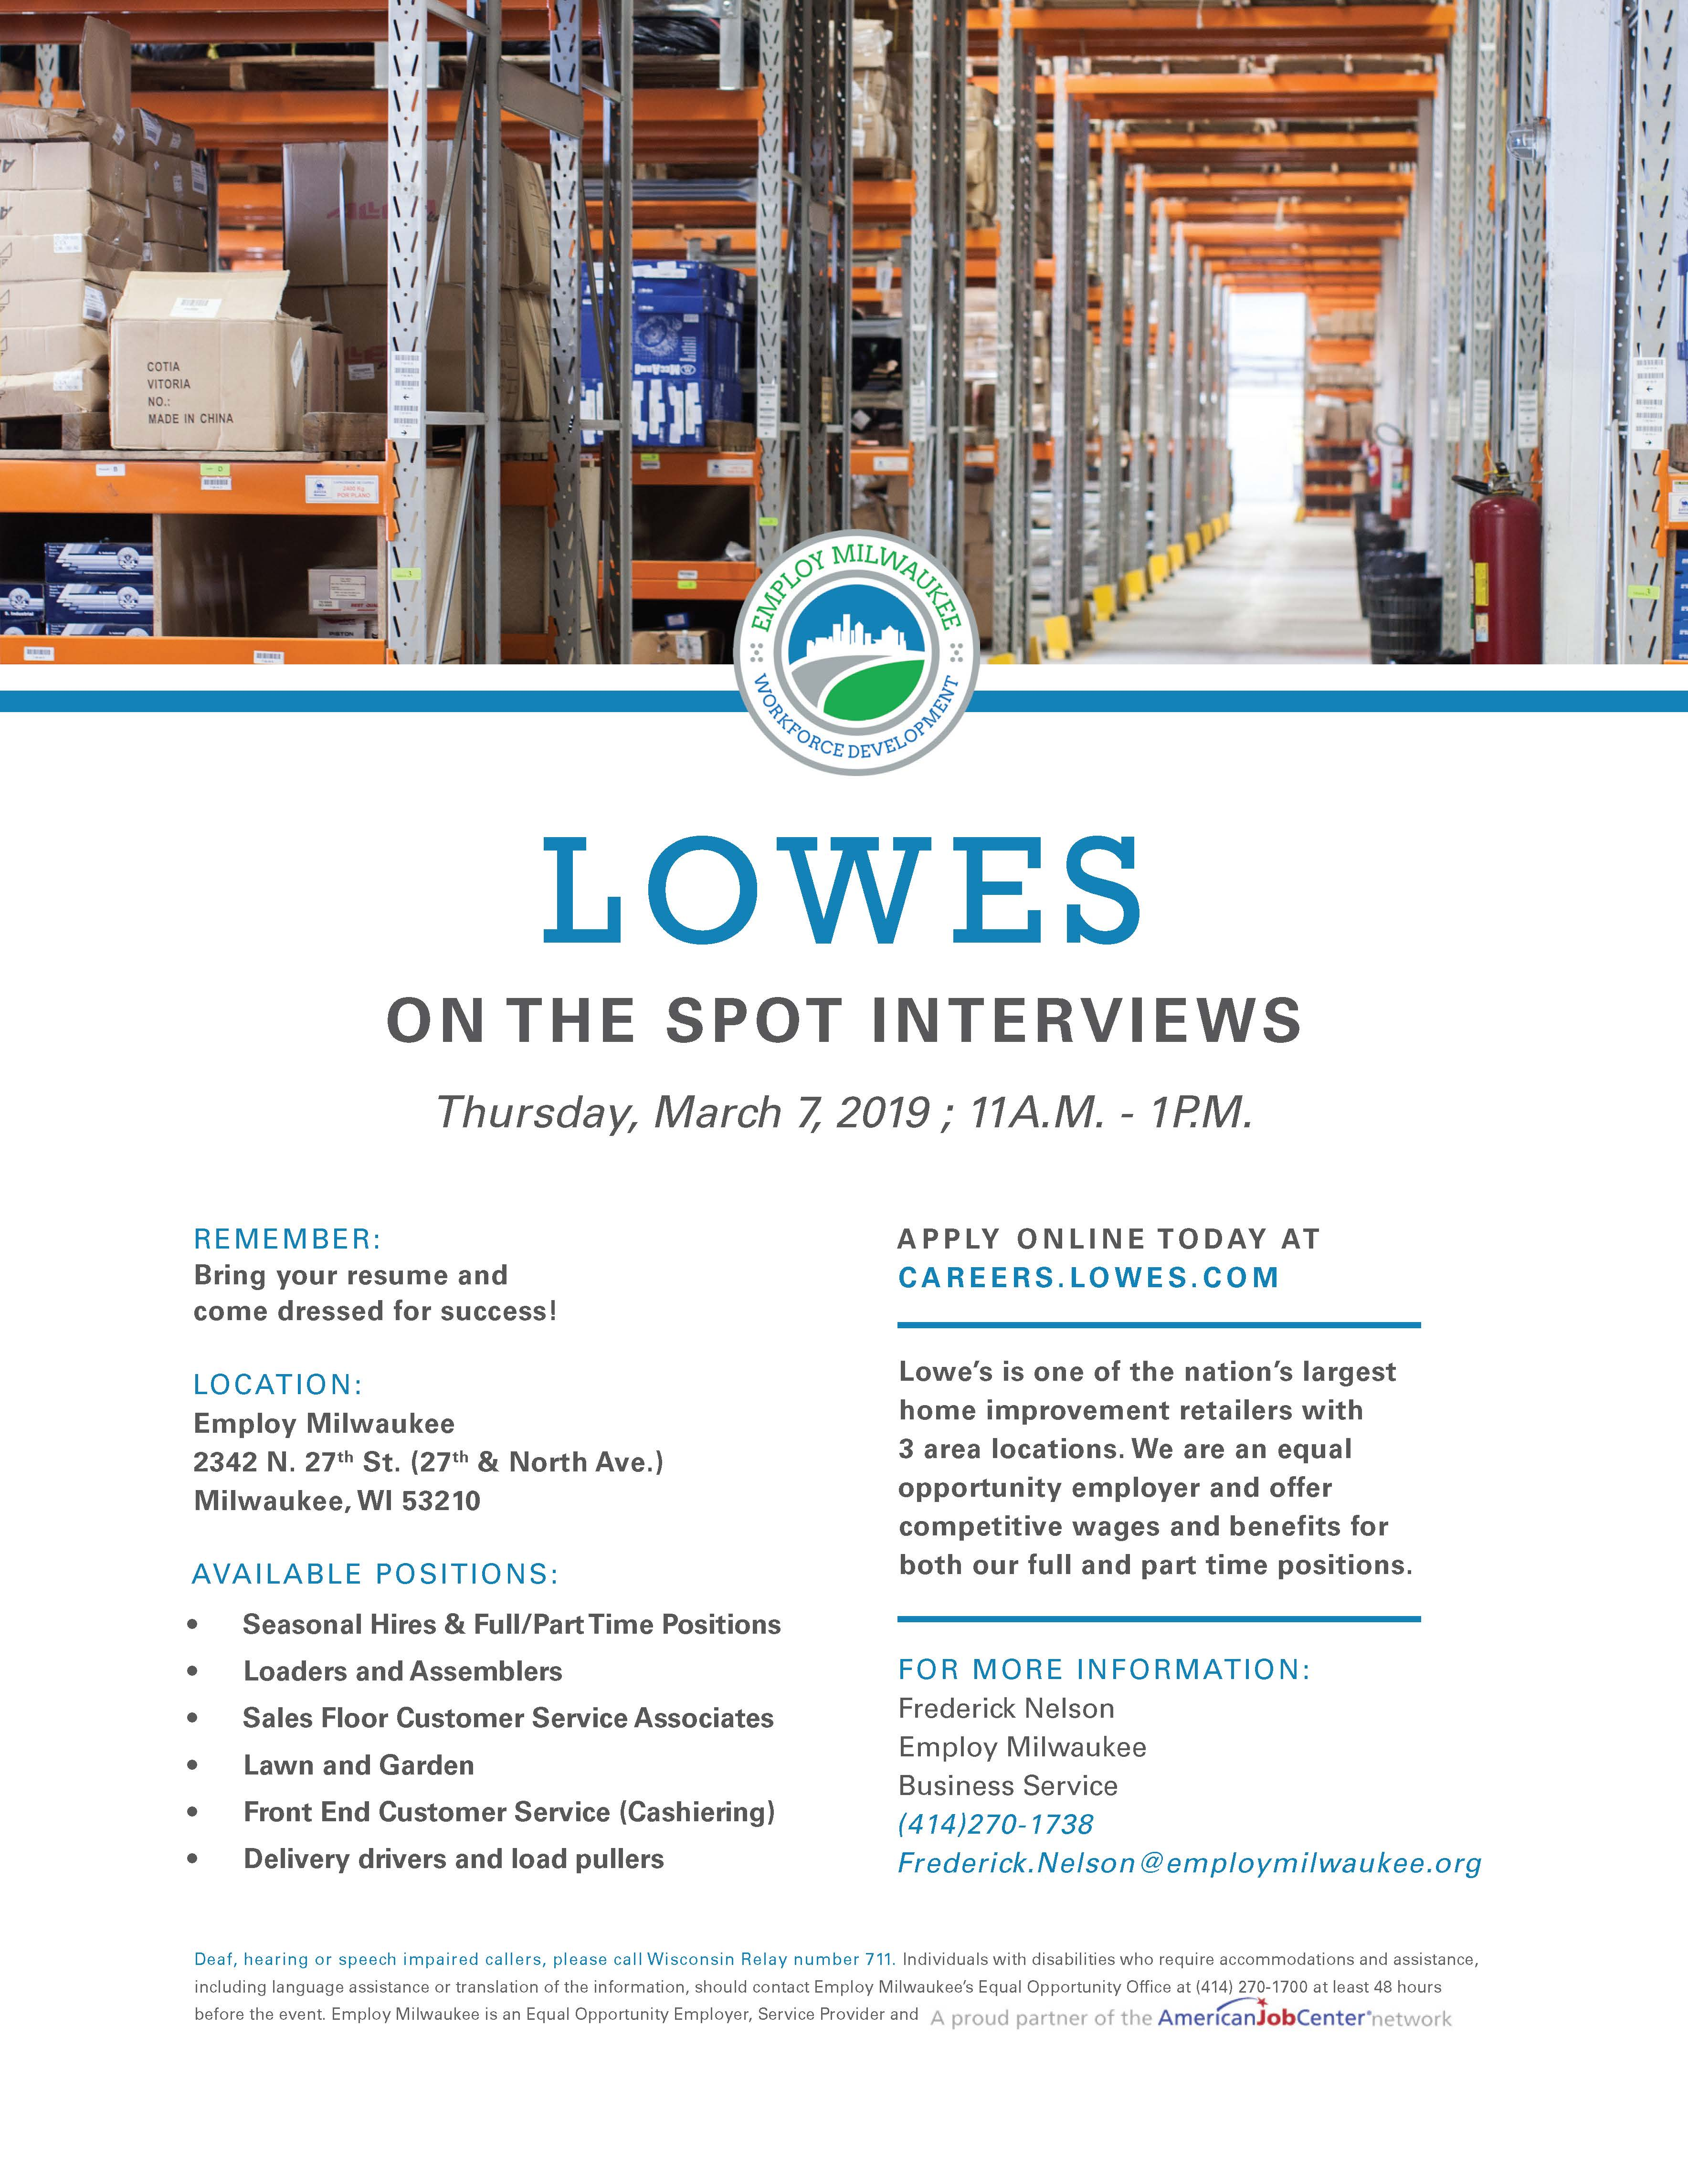 Economics Committee: On the spot interview at Lowes